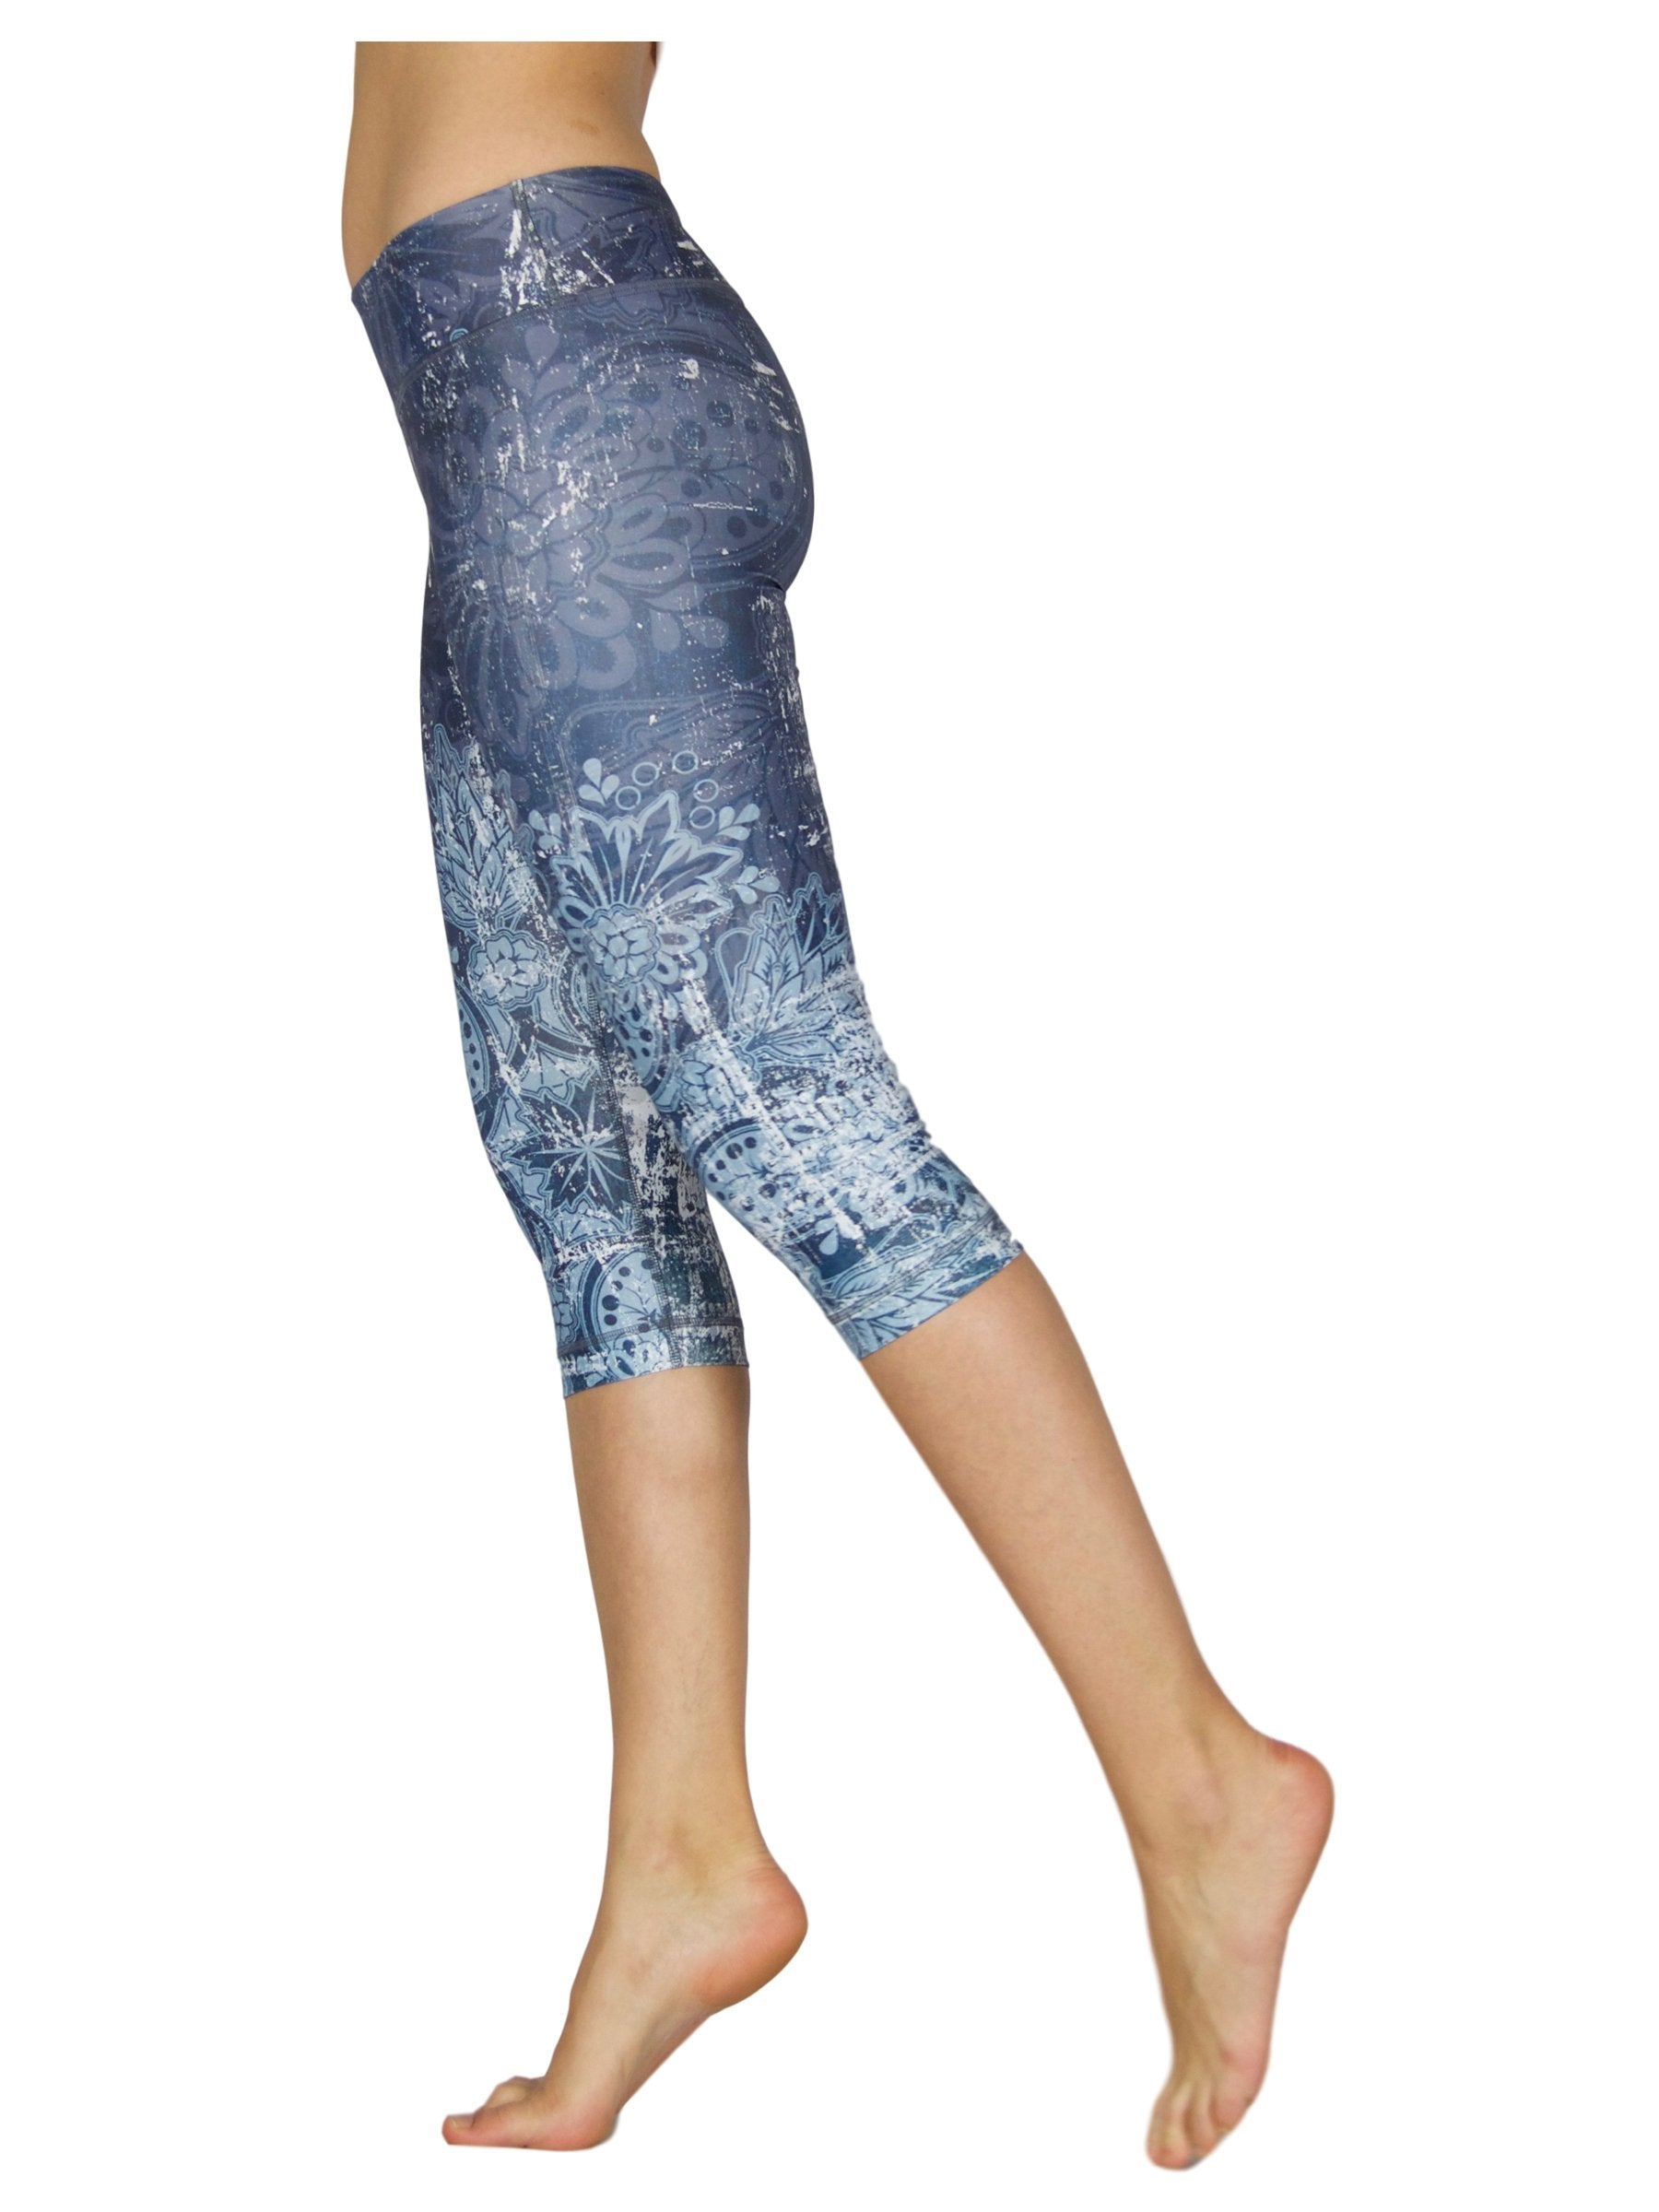 Love and Light by Niyama - High Quality, , Yoga Legging for Movement Artists.